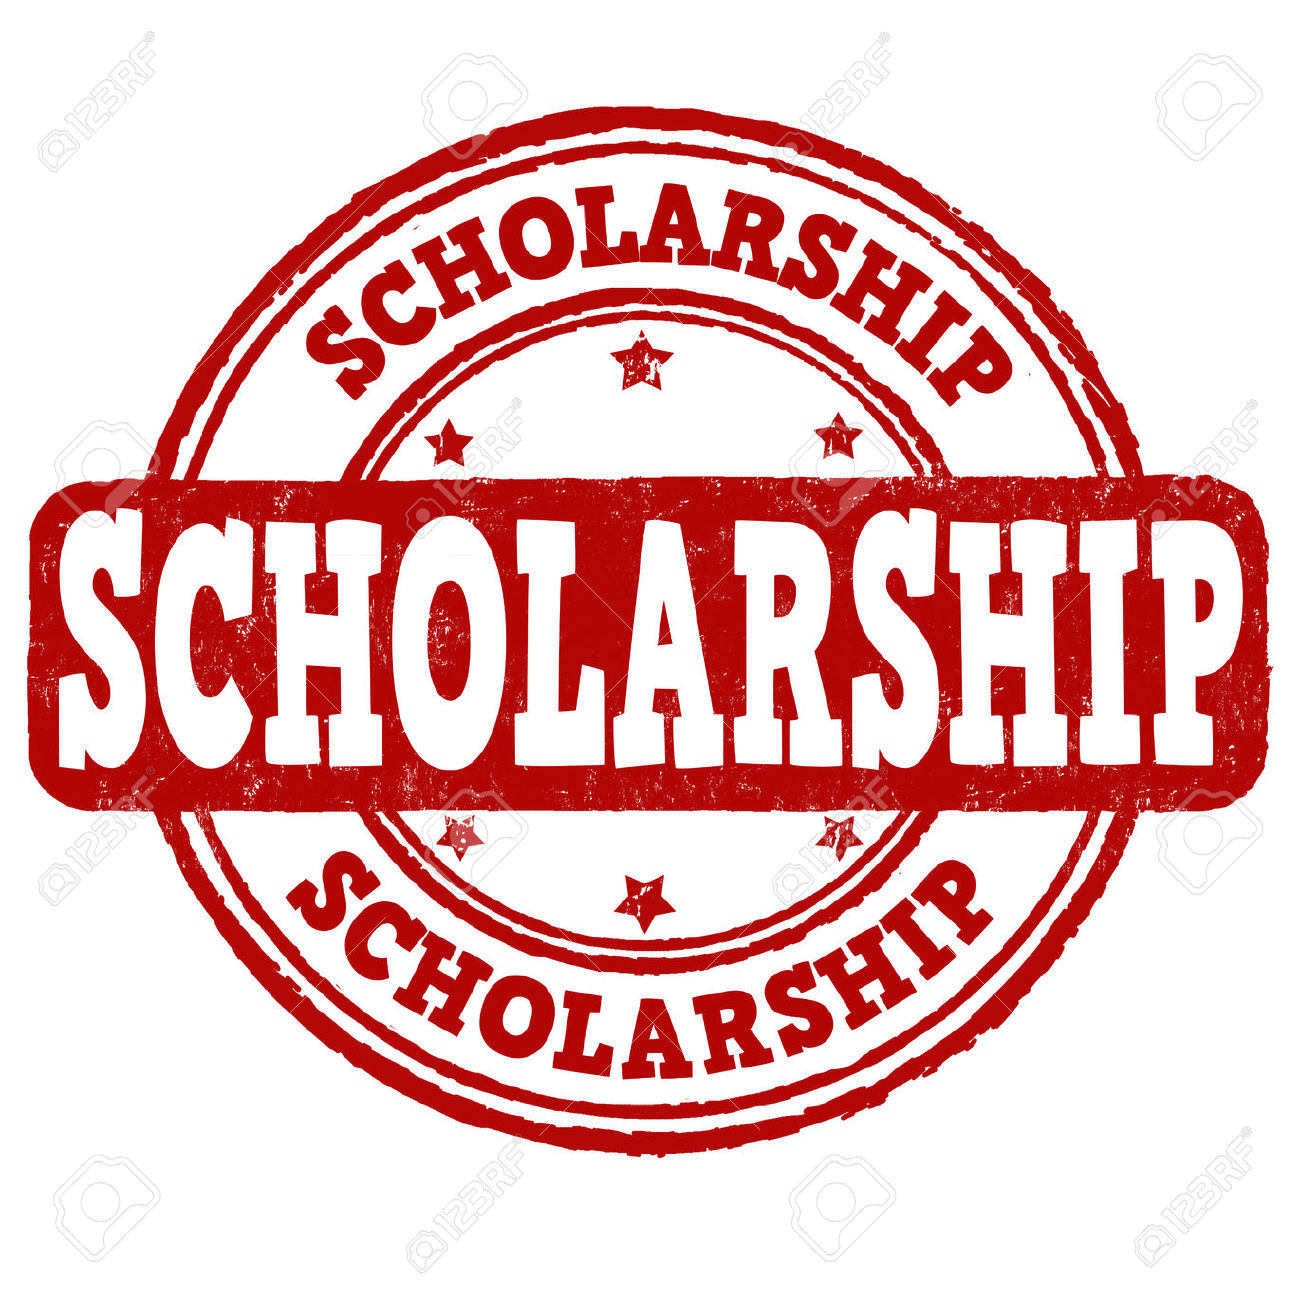 The Reality of Sports Scholarships